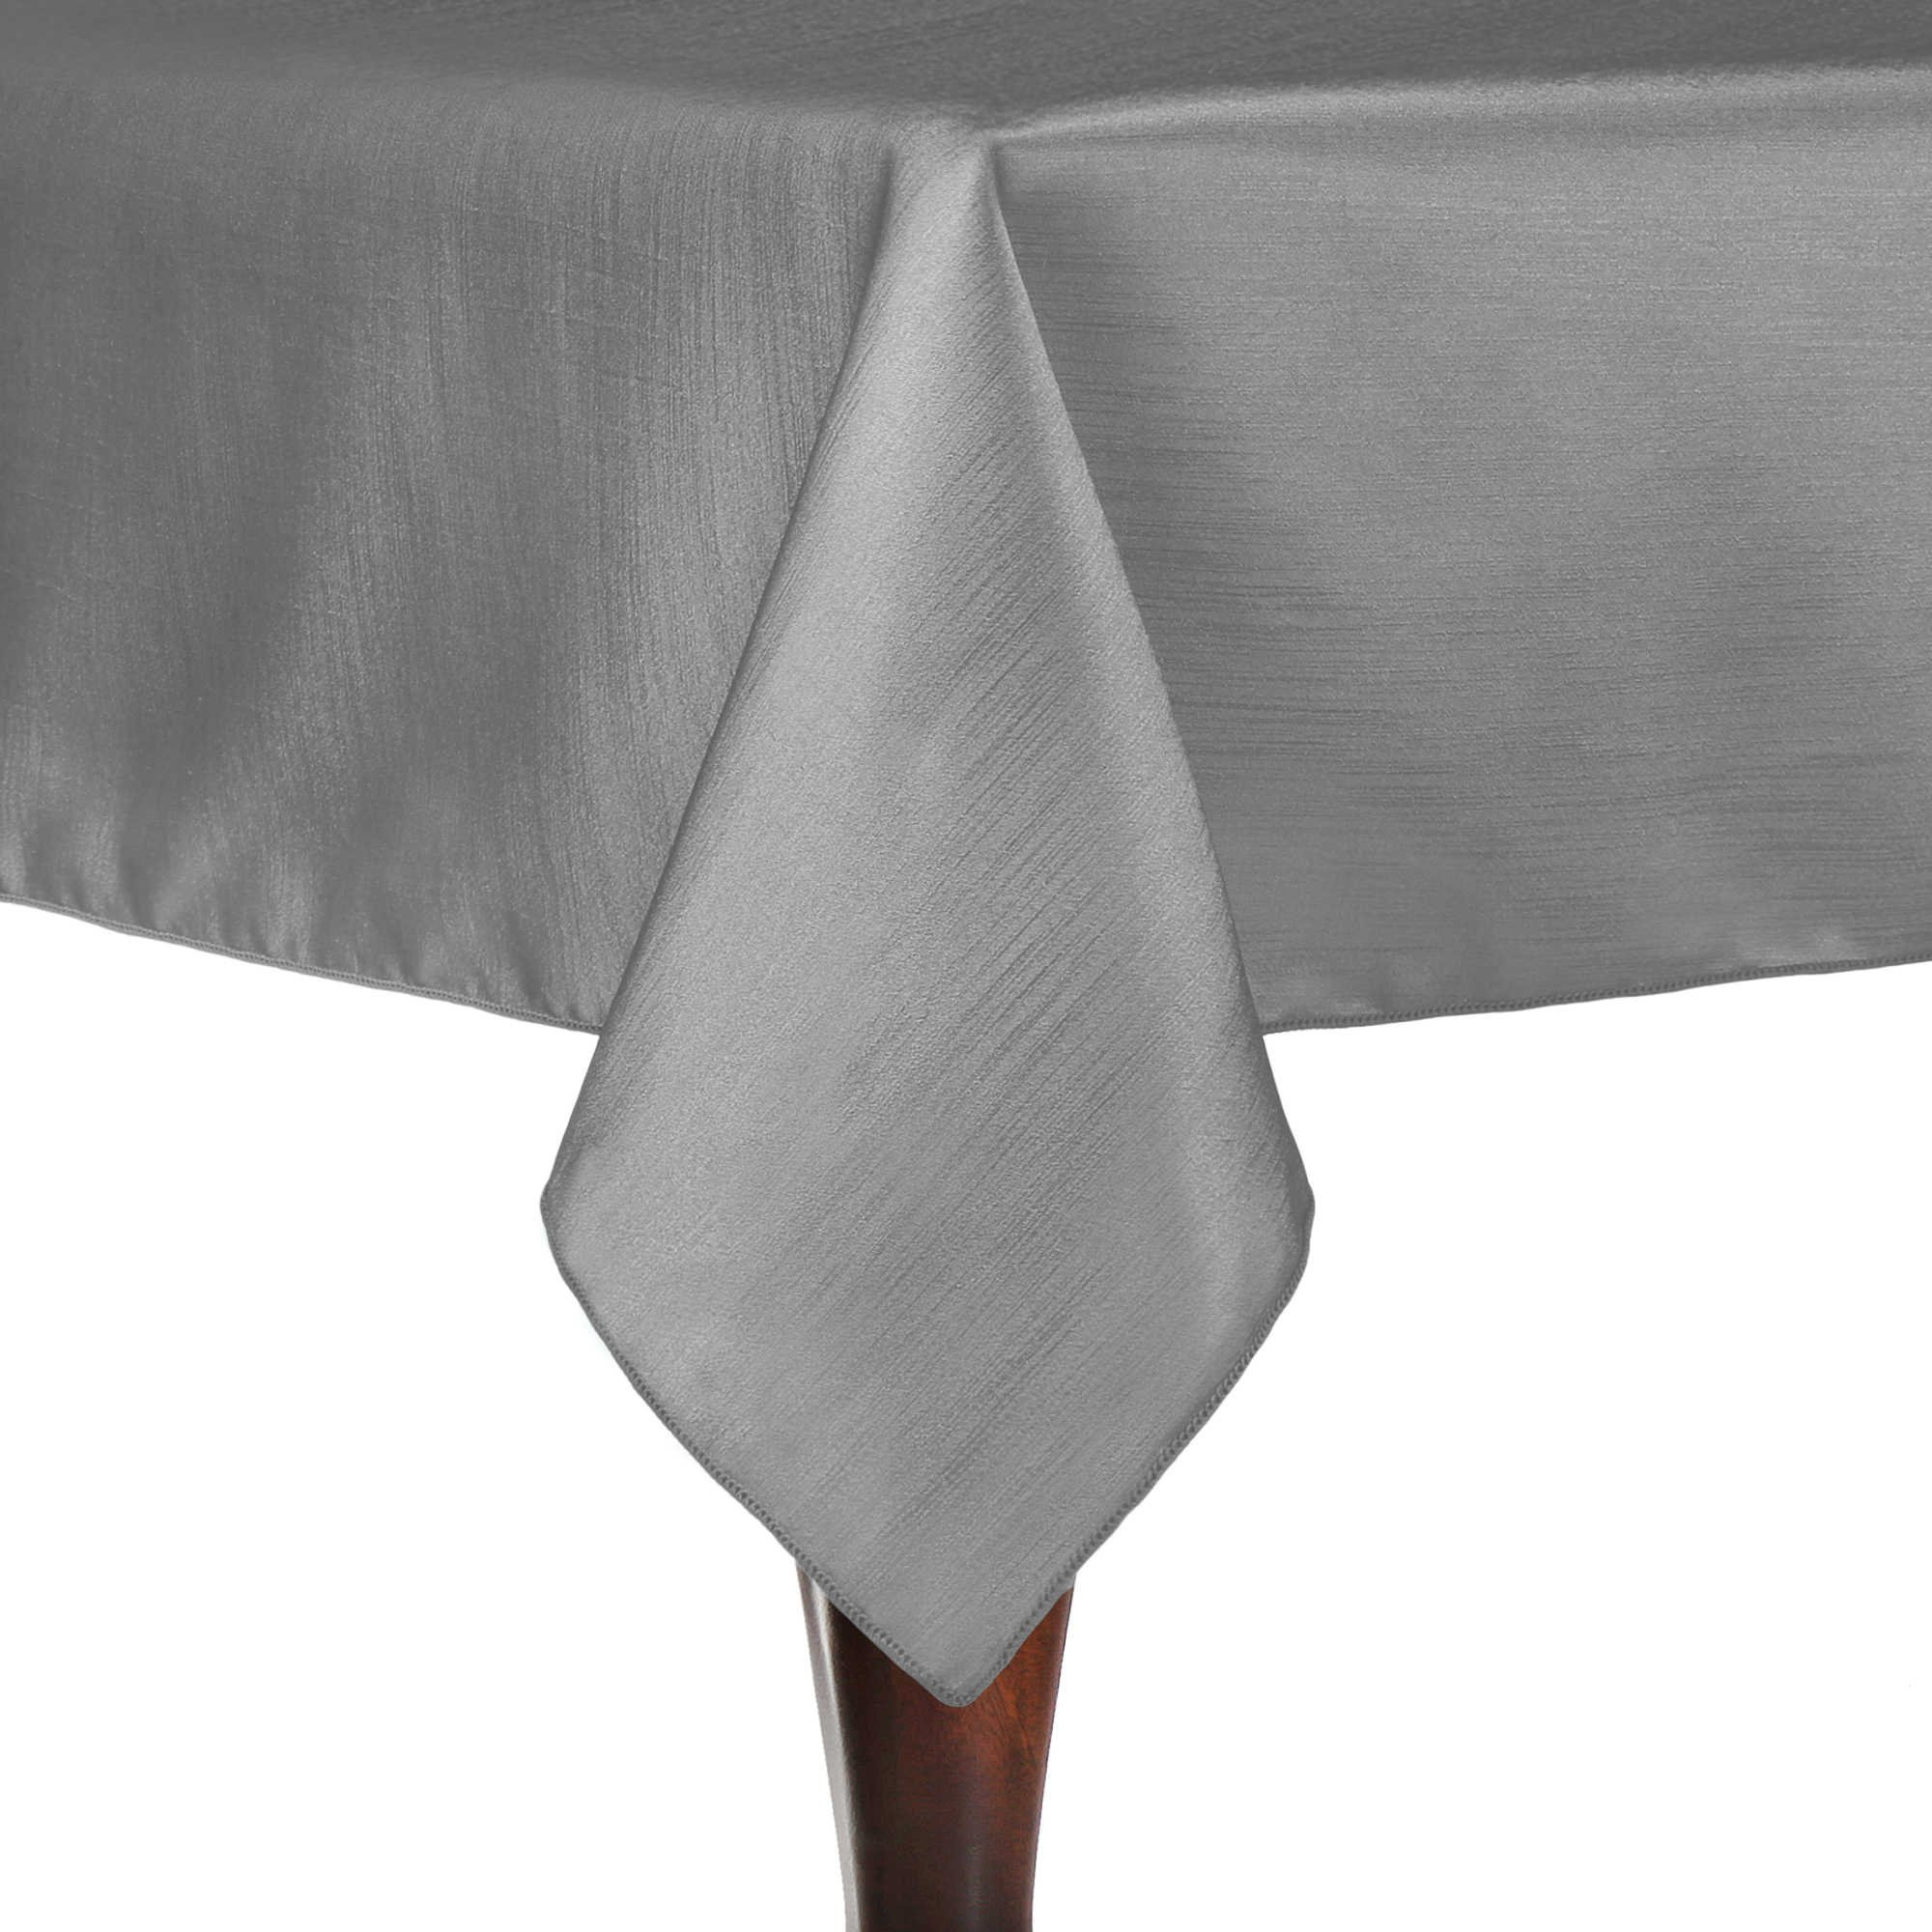 Ultimate Textile (10 Pack) Reversible Shantung Satin - Majestic 60 x 144-Inch Rectangular Tablecloth - for Weddings, Home Parties and Special Event use, Silver